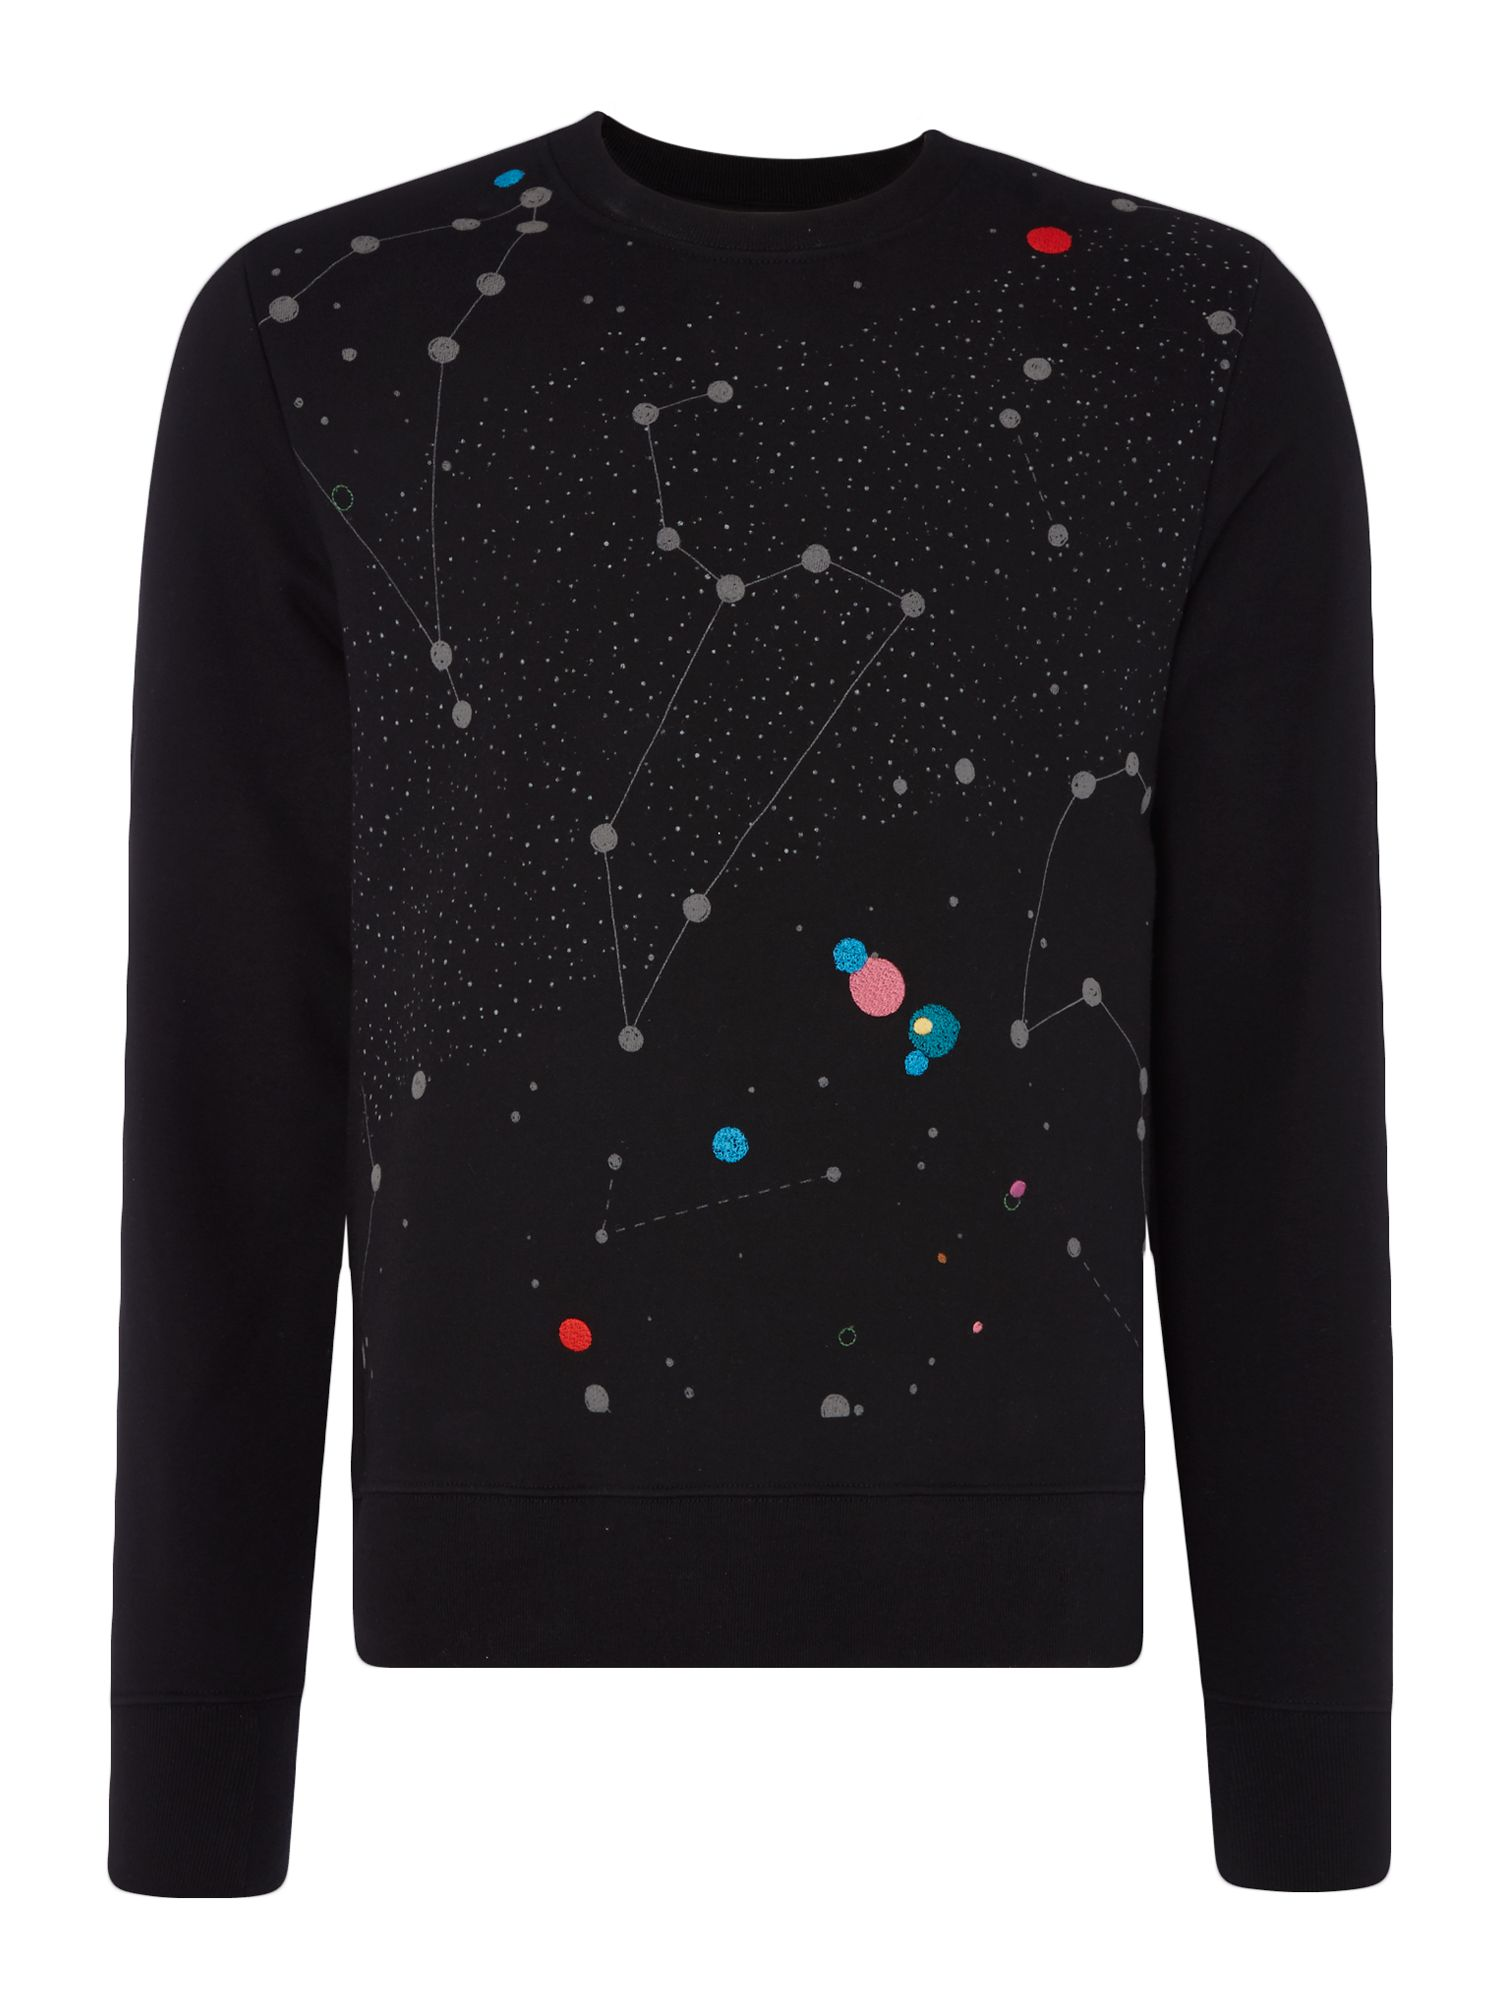 Men's PS By Paul Smith Constilation print sweatshirt, Black